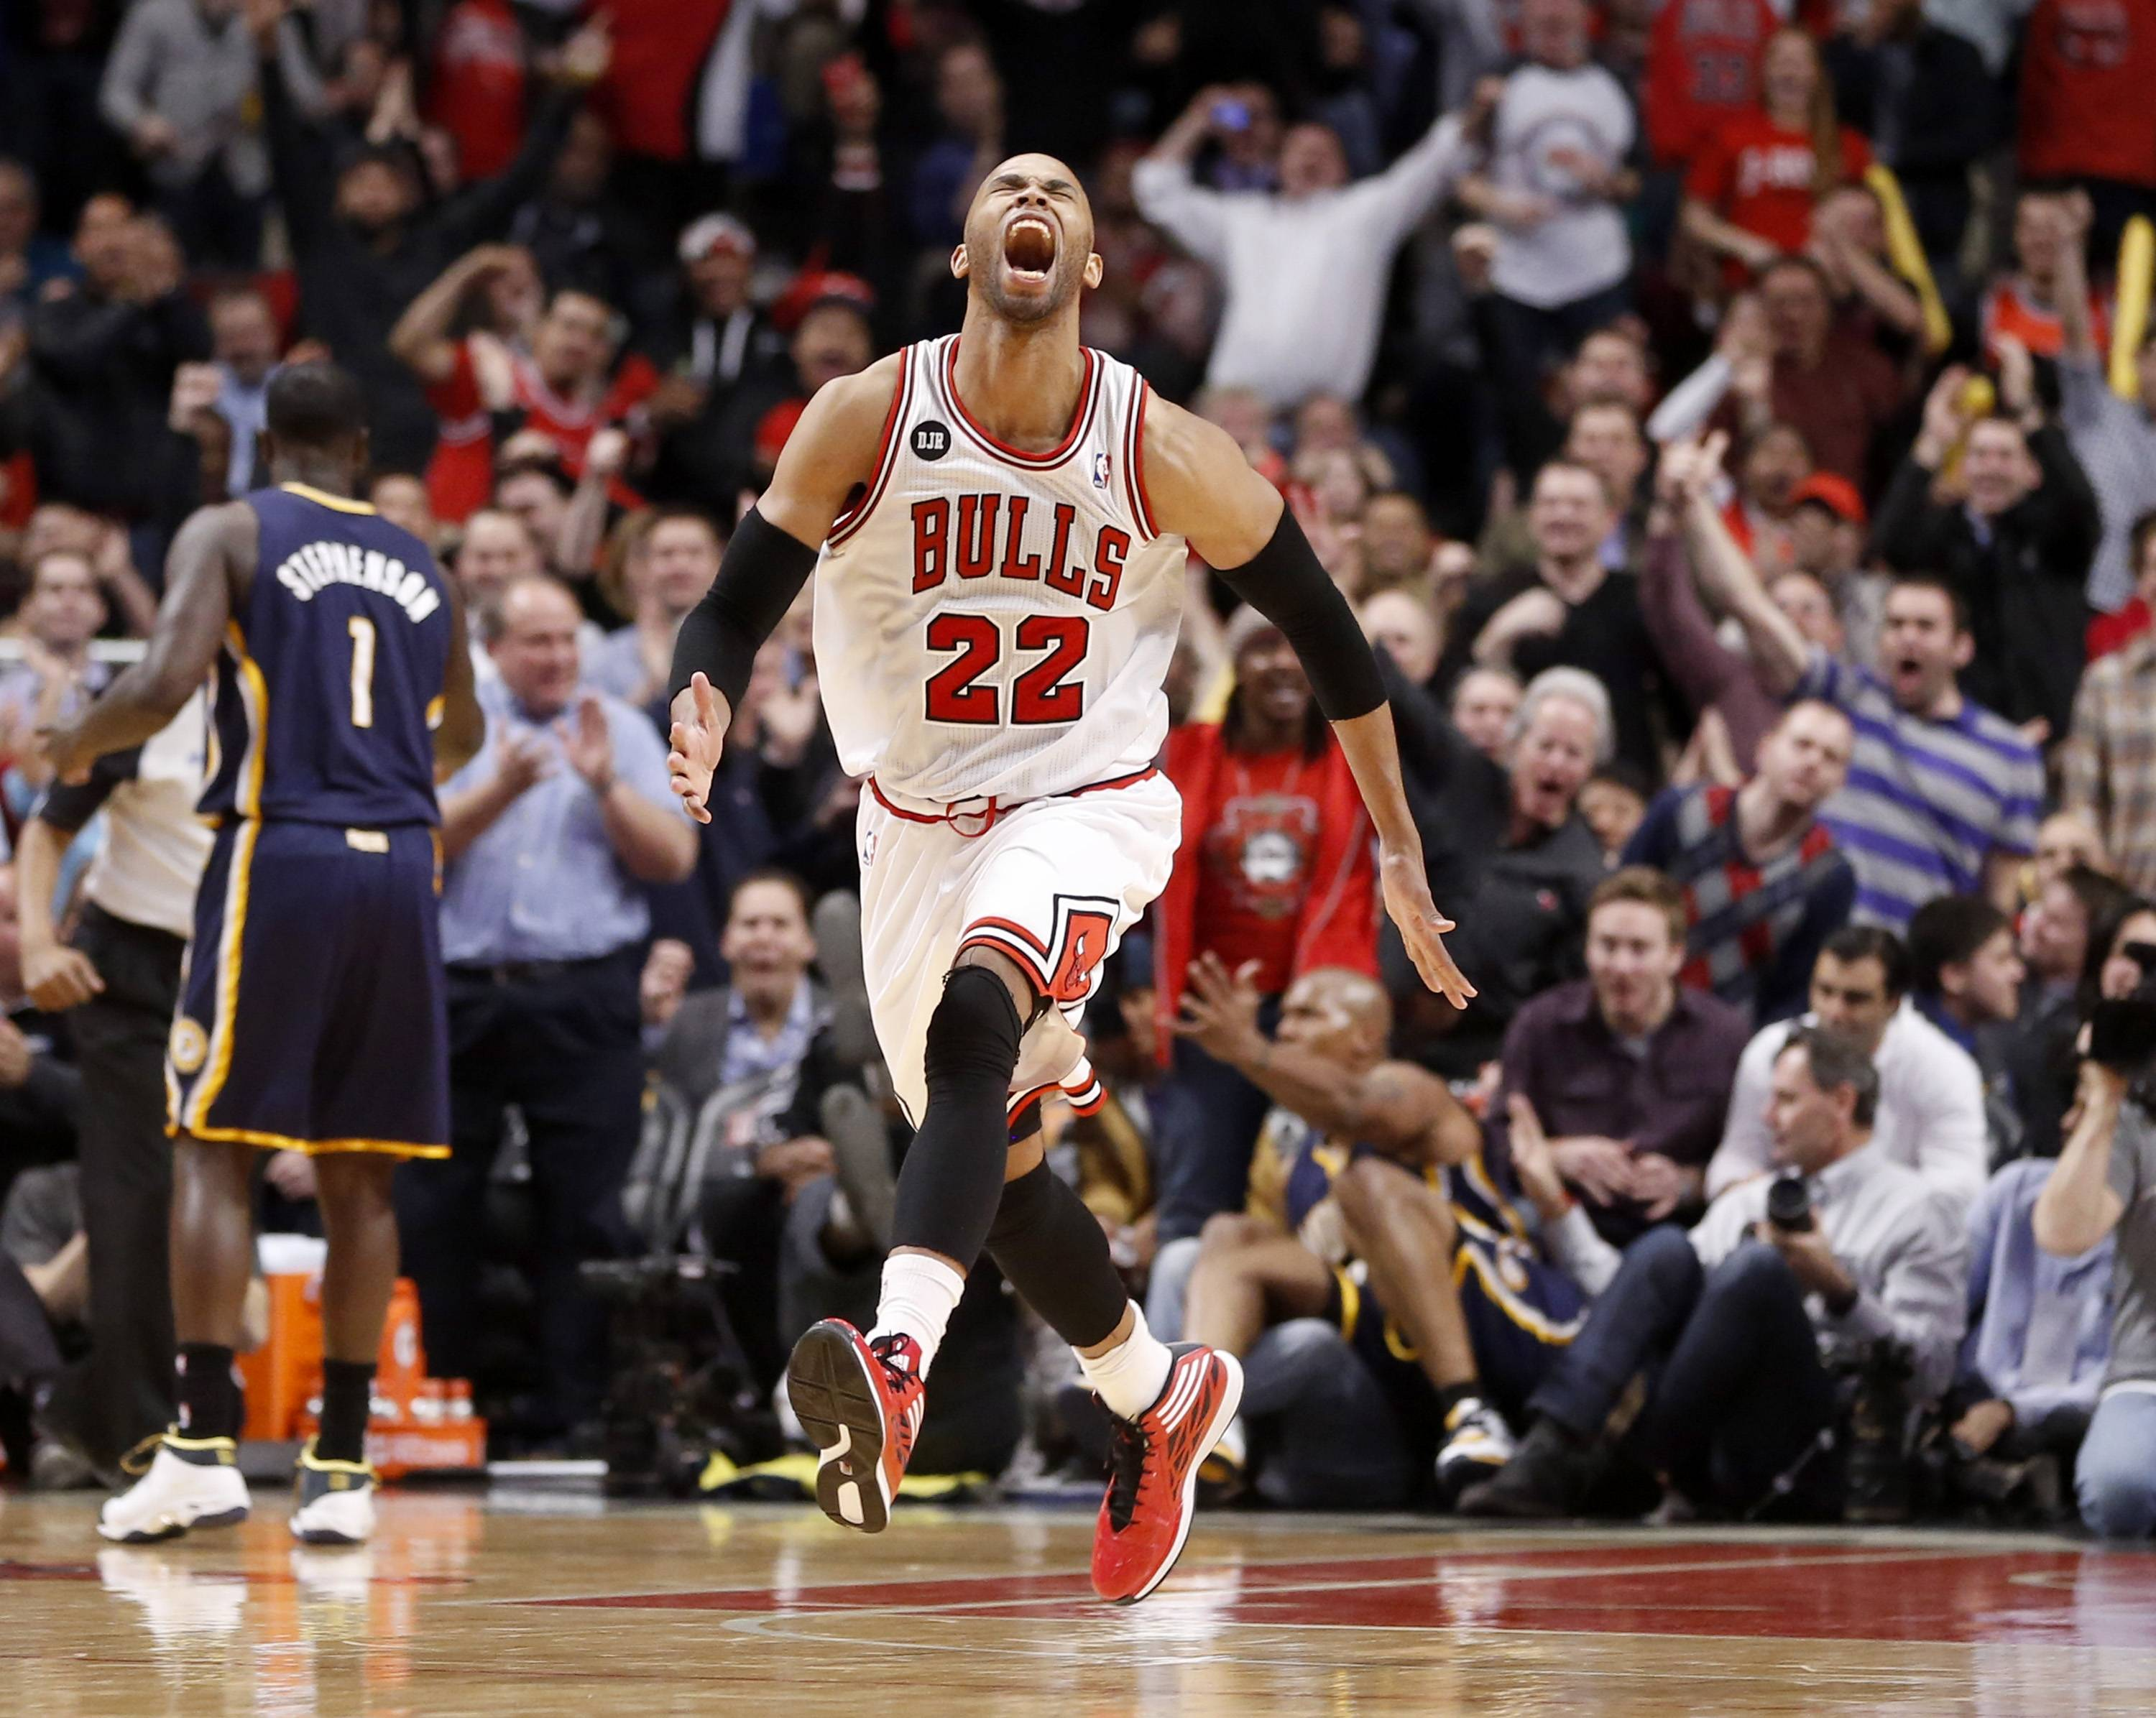 Bulls forward Taj Gibson (22) celebrates after his dunk off a rebound during the second half of an NBA basketball game against the Indiana Pacers Monday, March 24, 2014, in Chicago. The Bulls won 89-77.